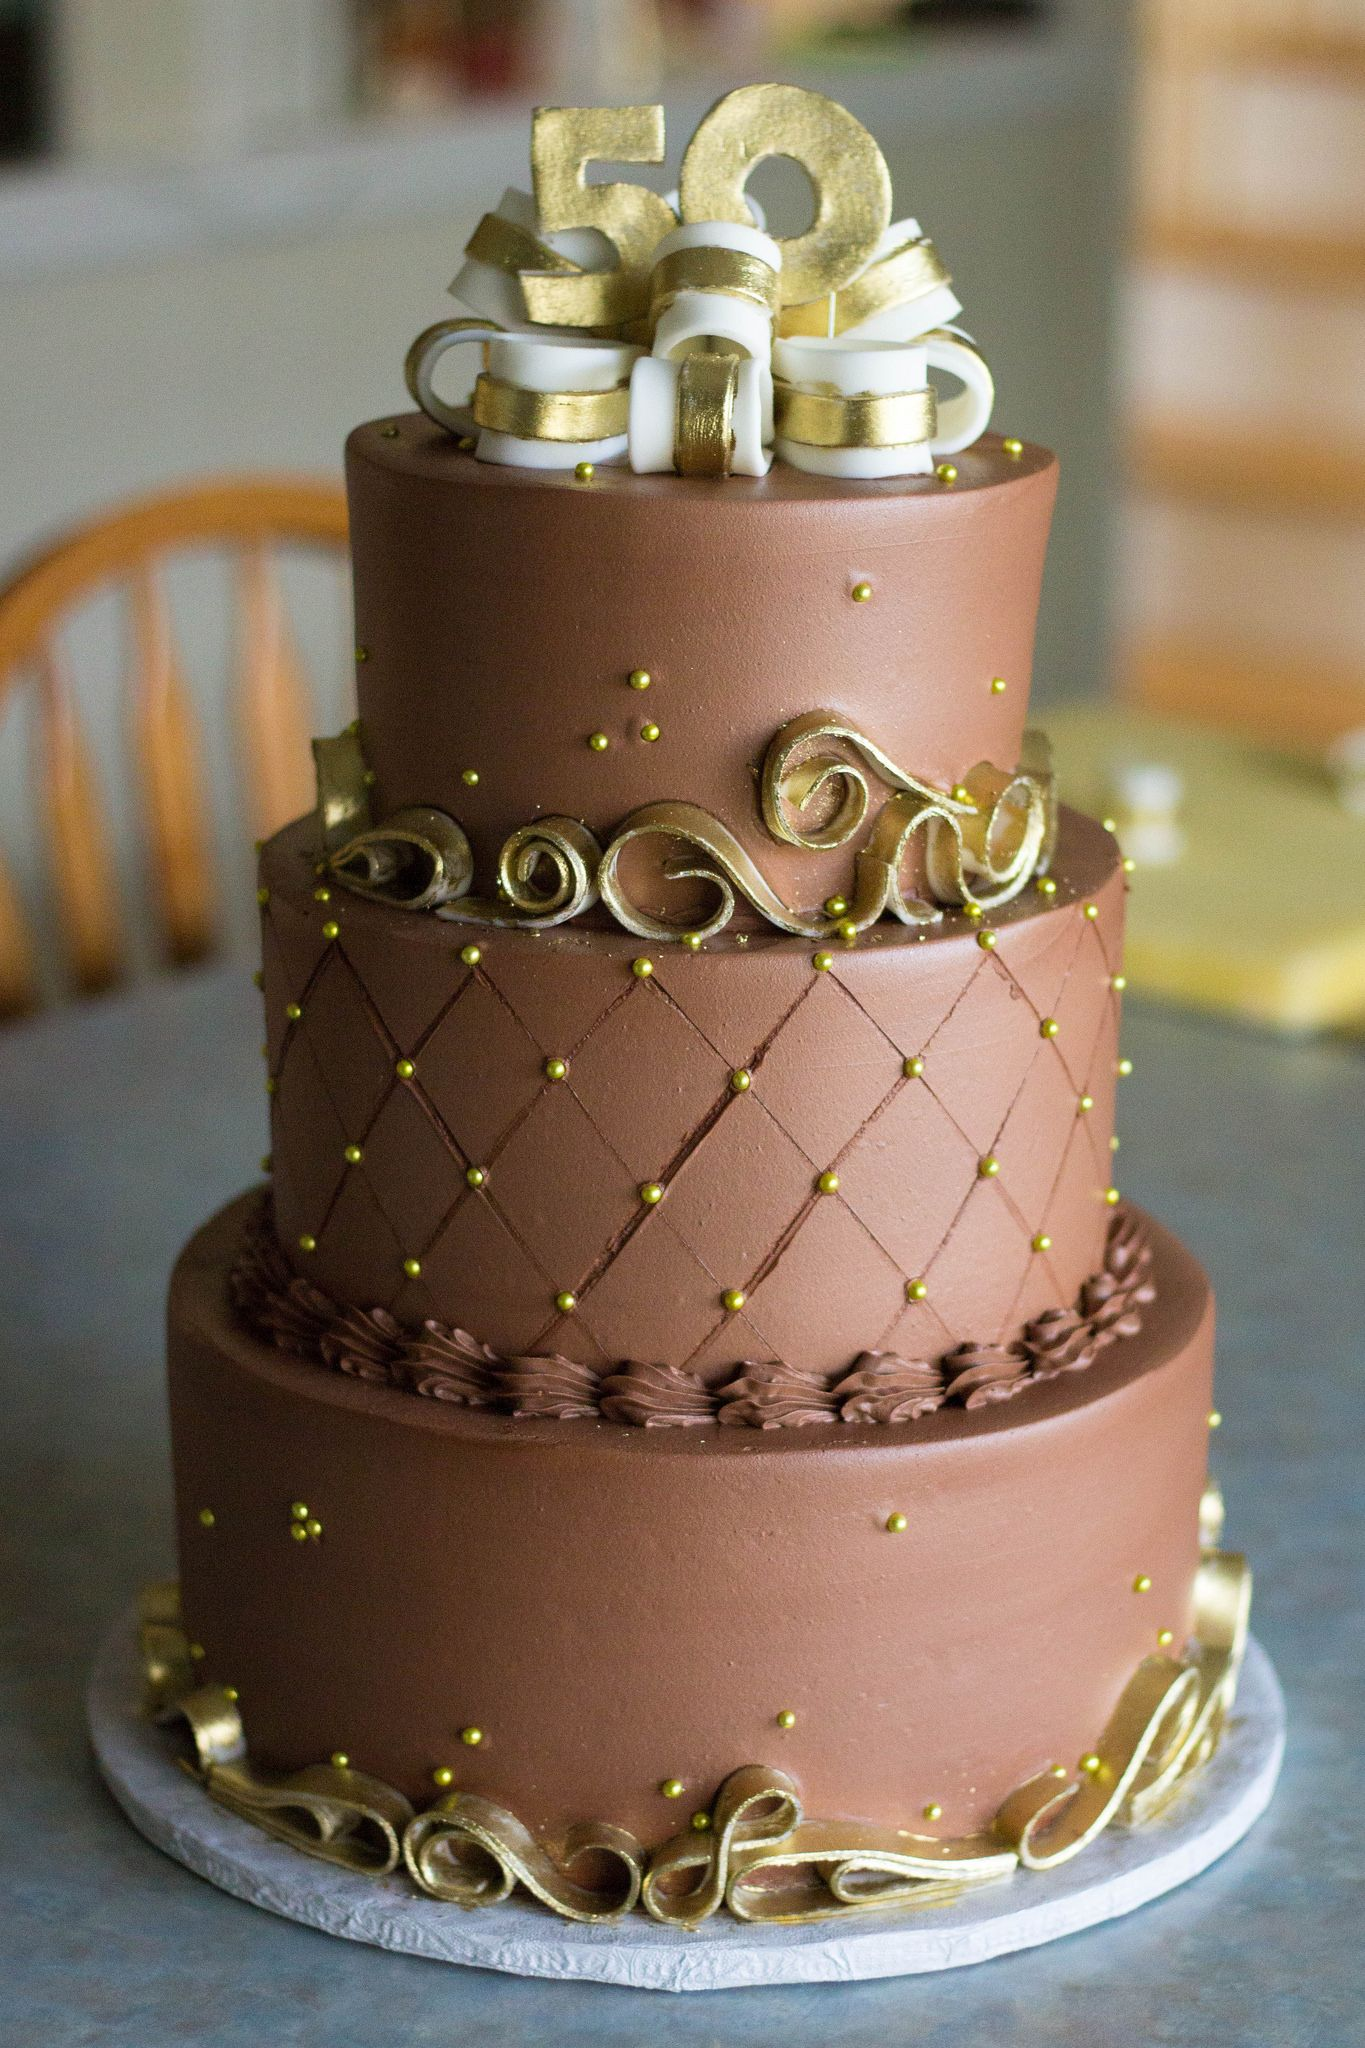 Chocolate Amp Gold 50th Anniversary Cake